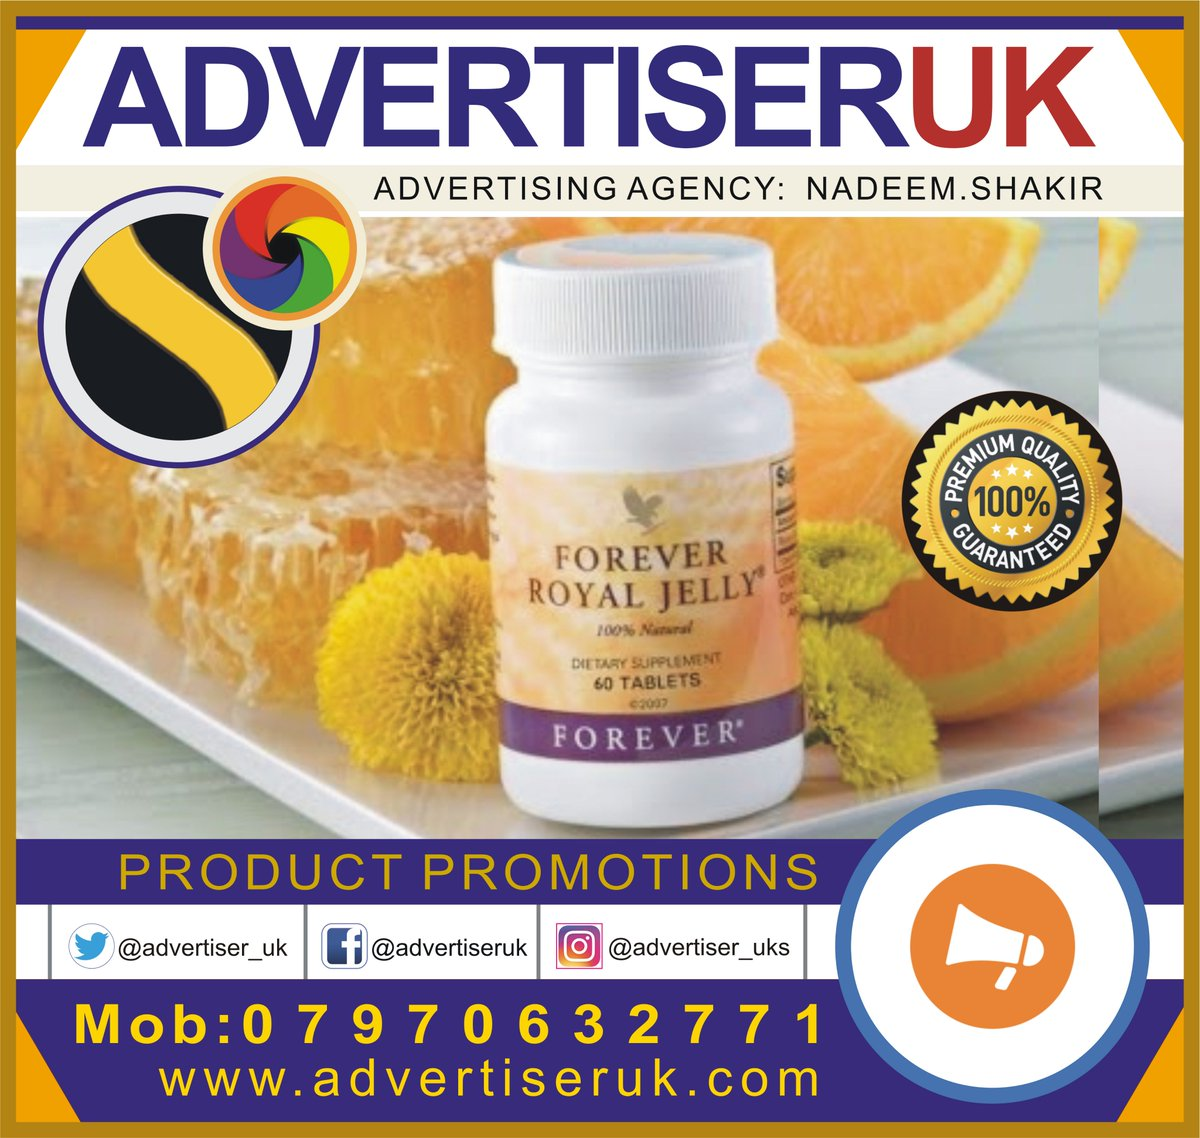 Forever Royal Jelly – Buy Now  https://www.foreverknowledge.info/index.php?id=product-catalogue&dist=440101711594&tx_pspproductapp_catalogueseo%5Baction%5D=product&tx_pspproductapp_catalogueseo%5Bcontroller%5D=Catalogue&tx_pspproductapp_catalogueseo%5Bproduct%5D=840&tx_pspproductapp_catalogueseo%5Bcategory%5D=78005…  Forever #Royal #Jelly is made for royalty! Natural royal jelly is an extremely #nutritious and #biochemically complex #honey #bee secretion. It's a rich milky substance which consists of proteins, simple sugars, fatty acids